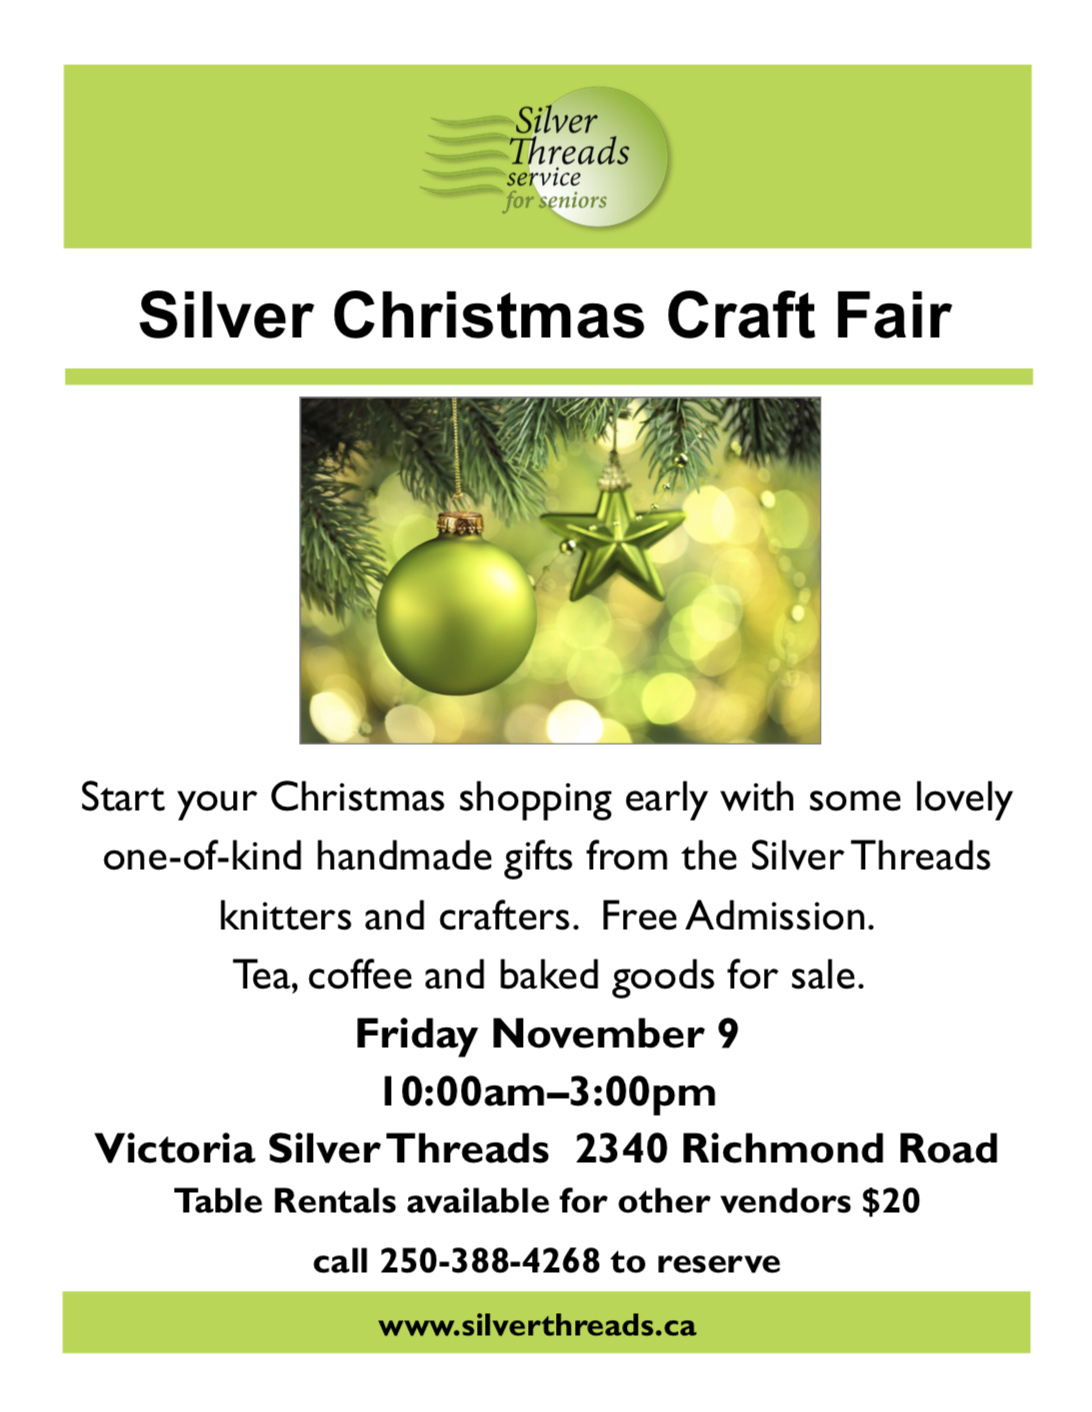 Silver Threads Christmas Craft Fair - 2018.11.09.jpg